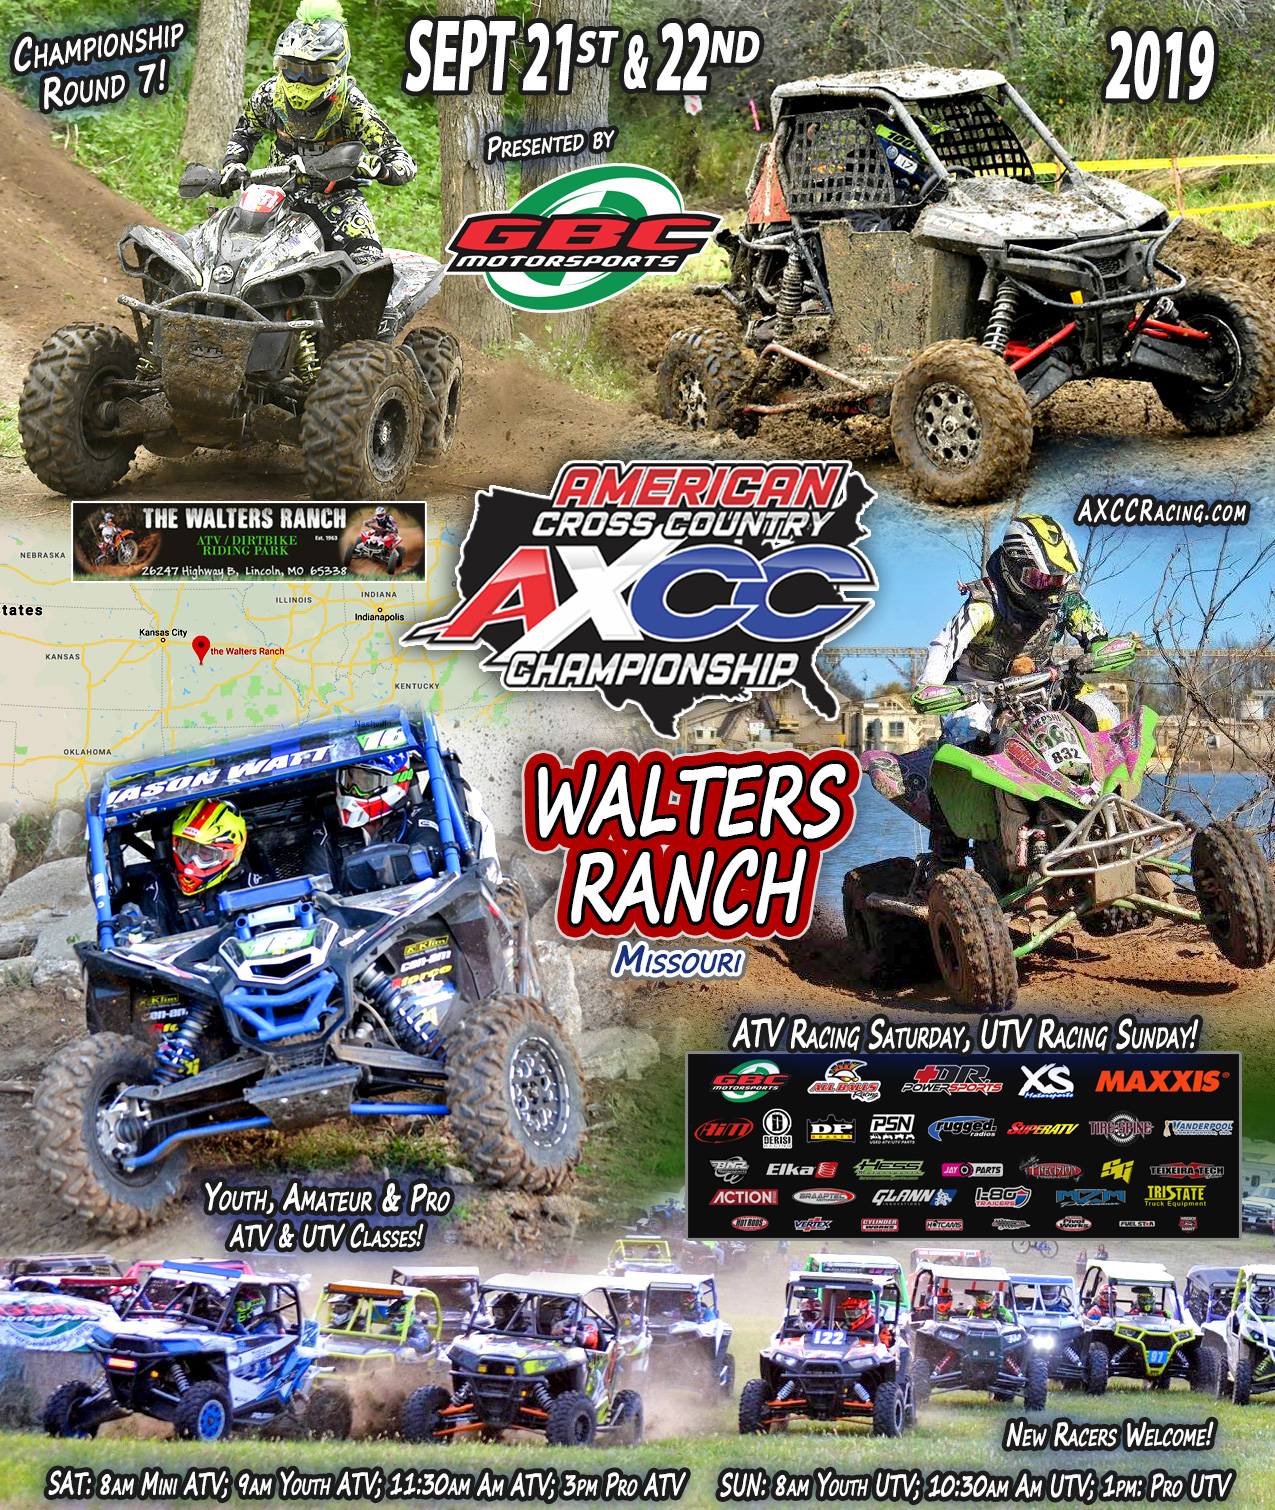 Walters Ranch Missouri race AXCC round 7